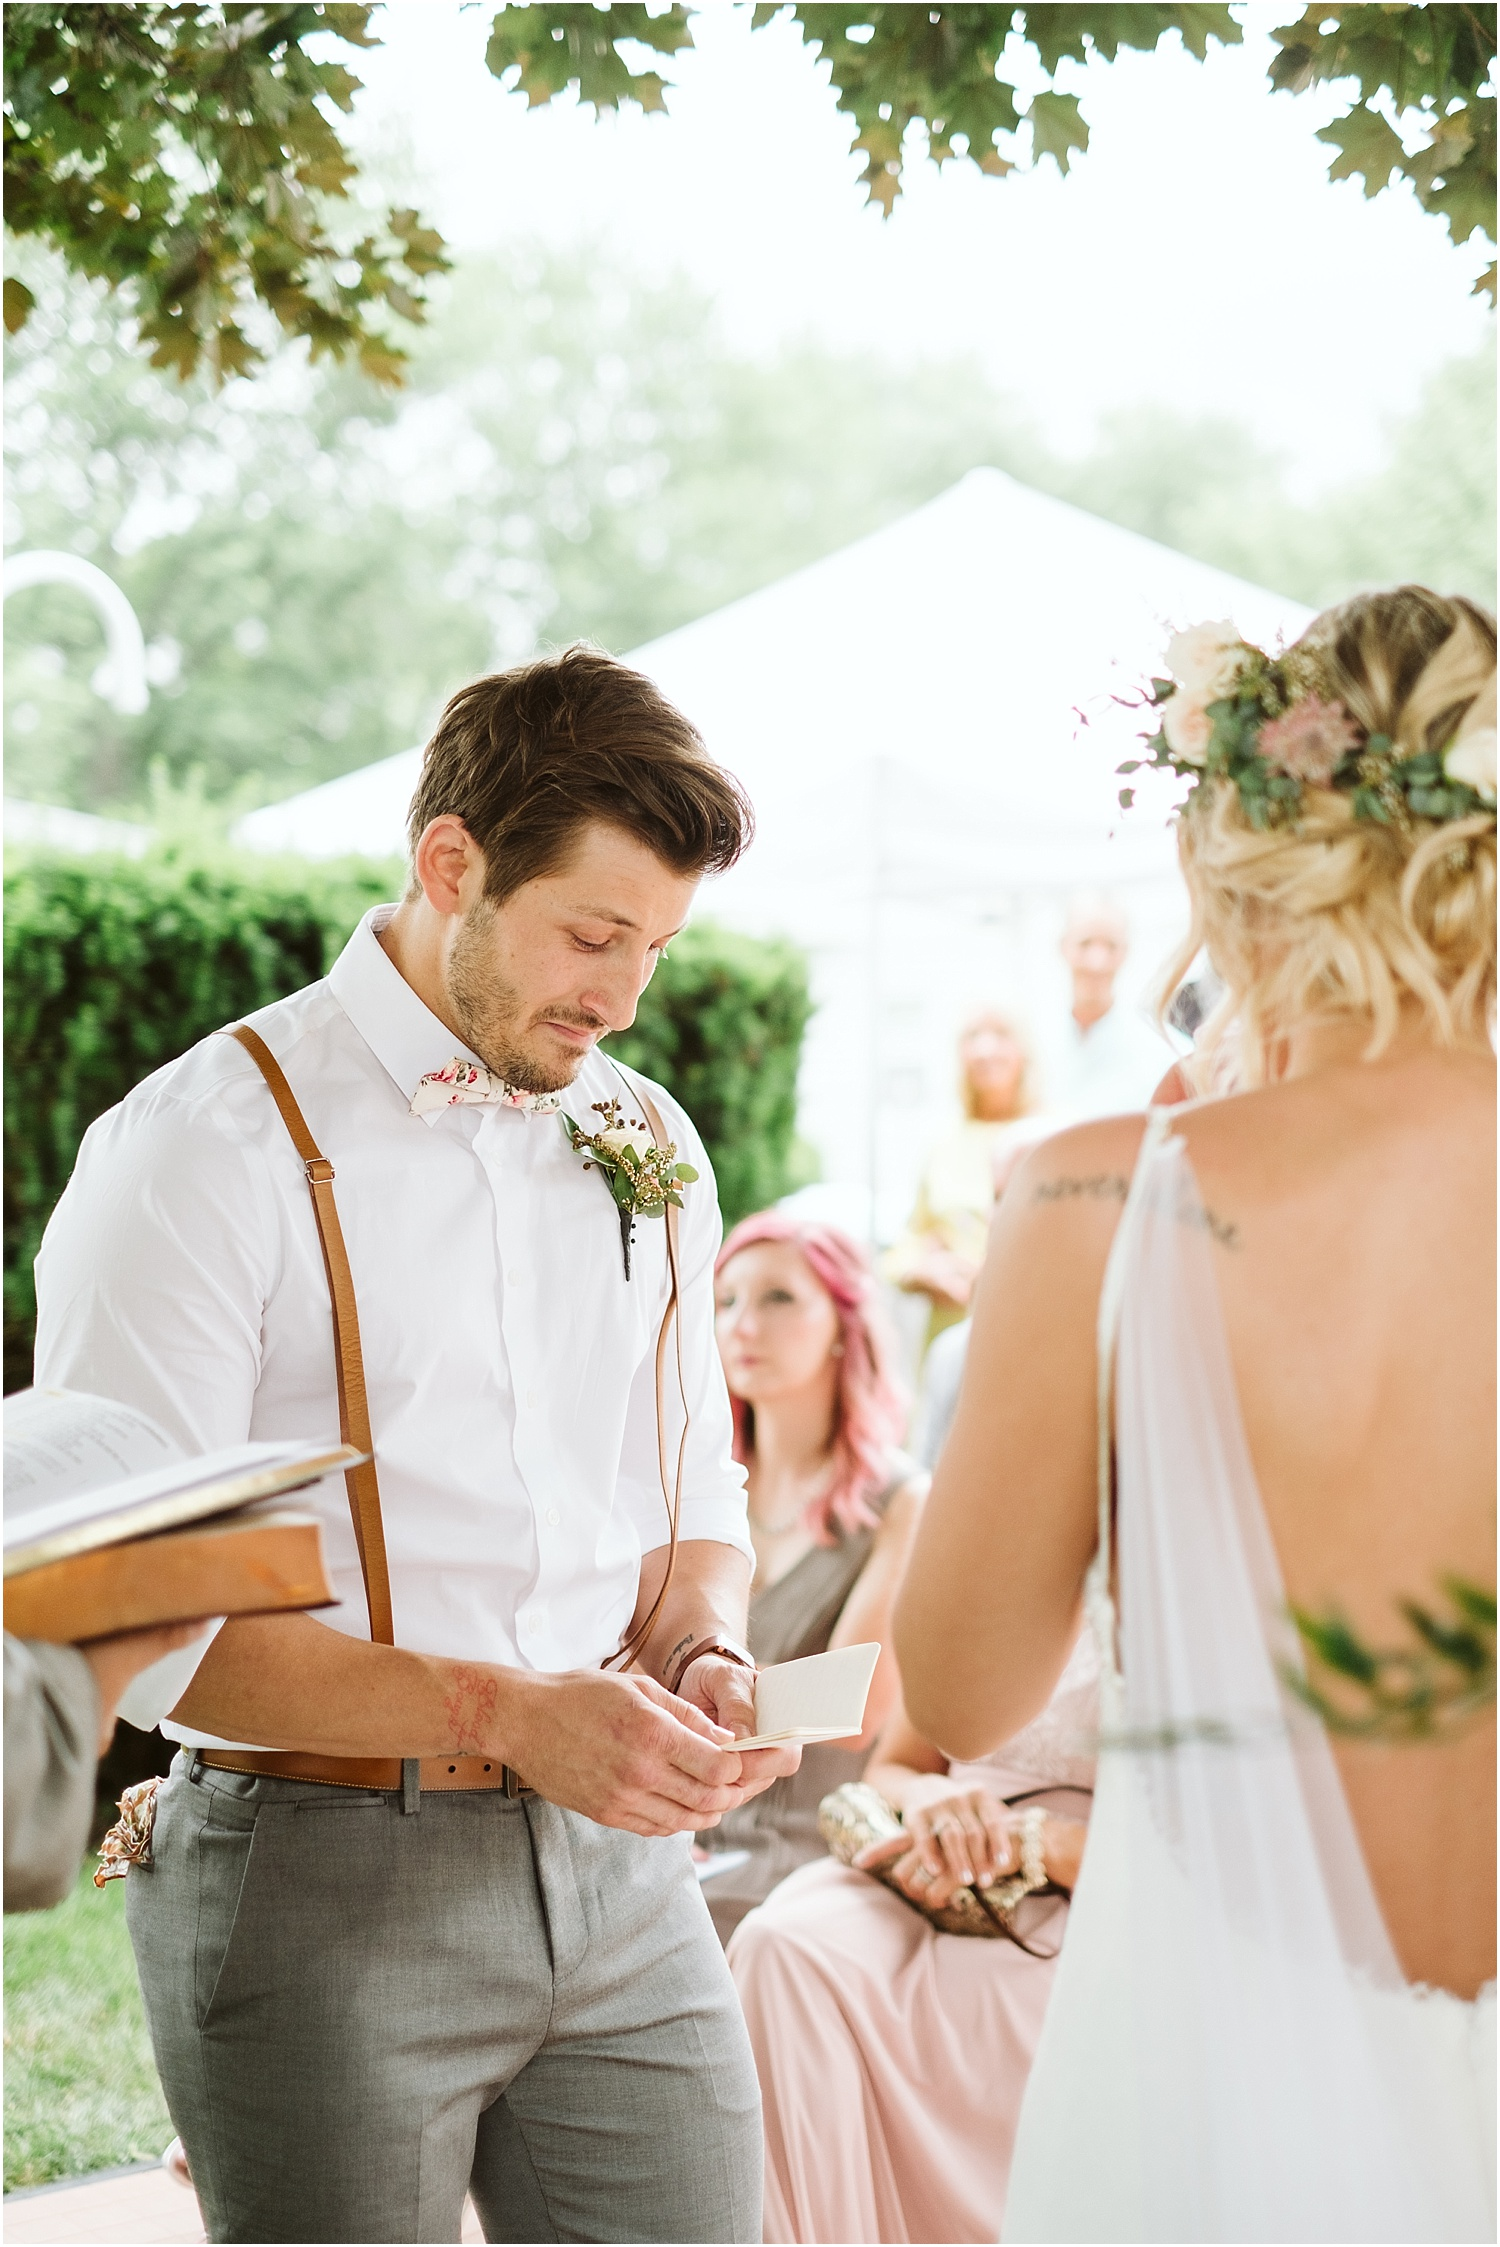 j-b-joyful-happy-smile-dancing-backyard-diy-boho-chic-wedding_0042.jpg